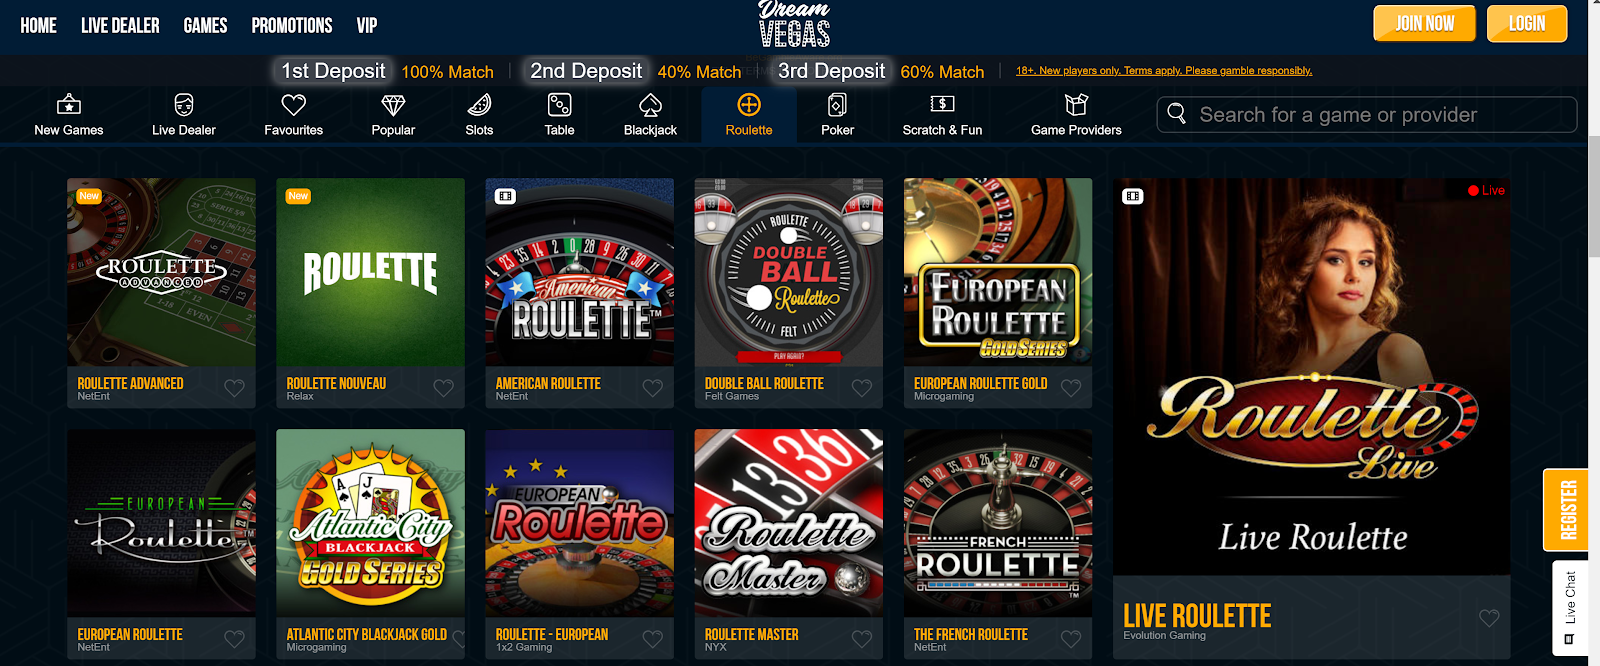 Dream Vegas is one of the best high stakes roulette casinos